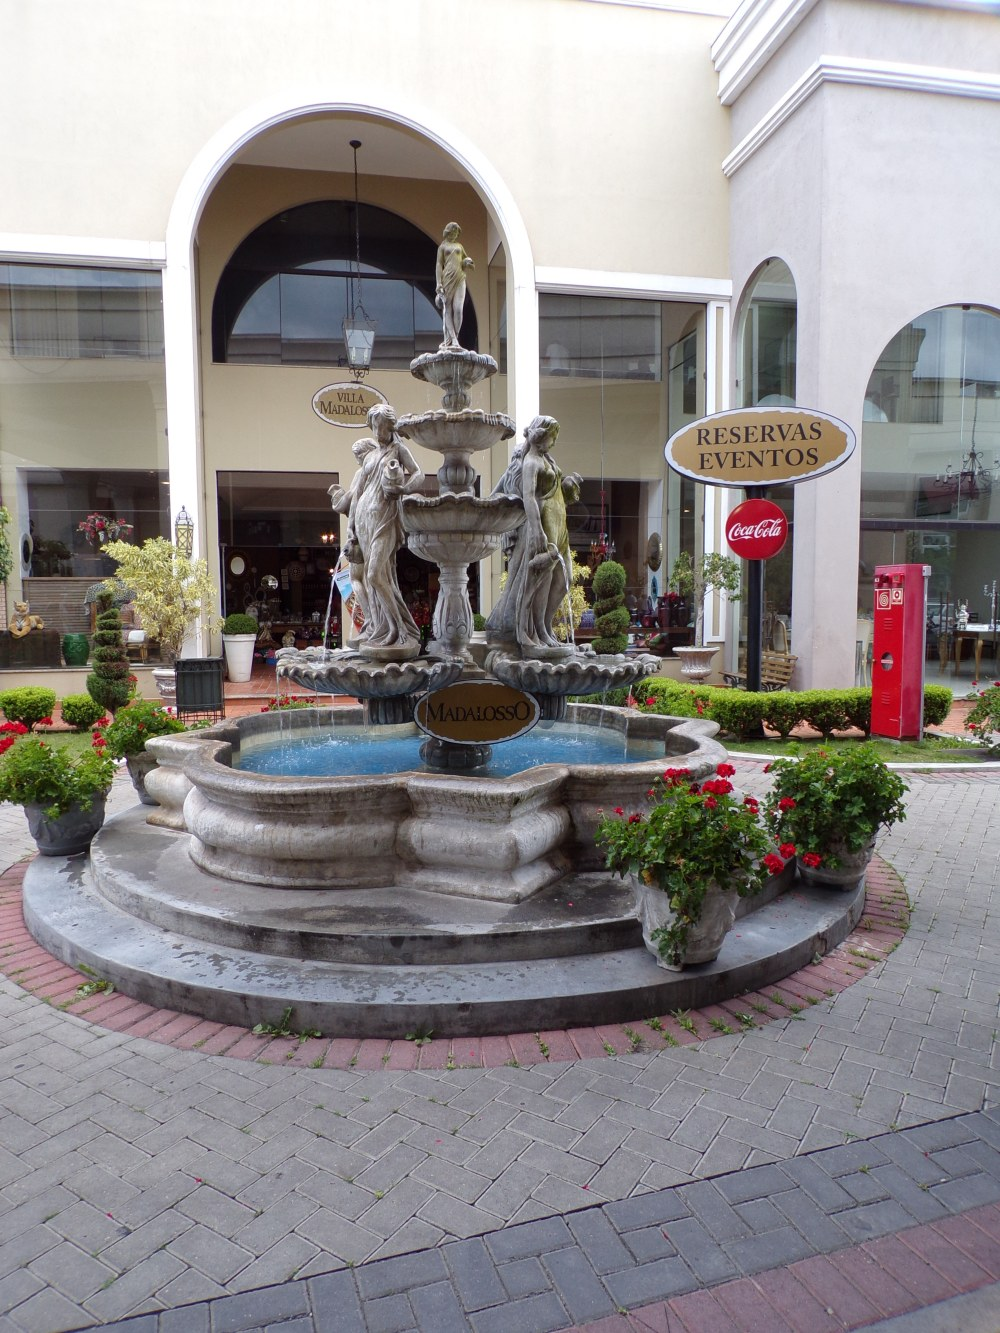 Fountain in courtyard outside Madalosso